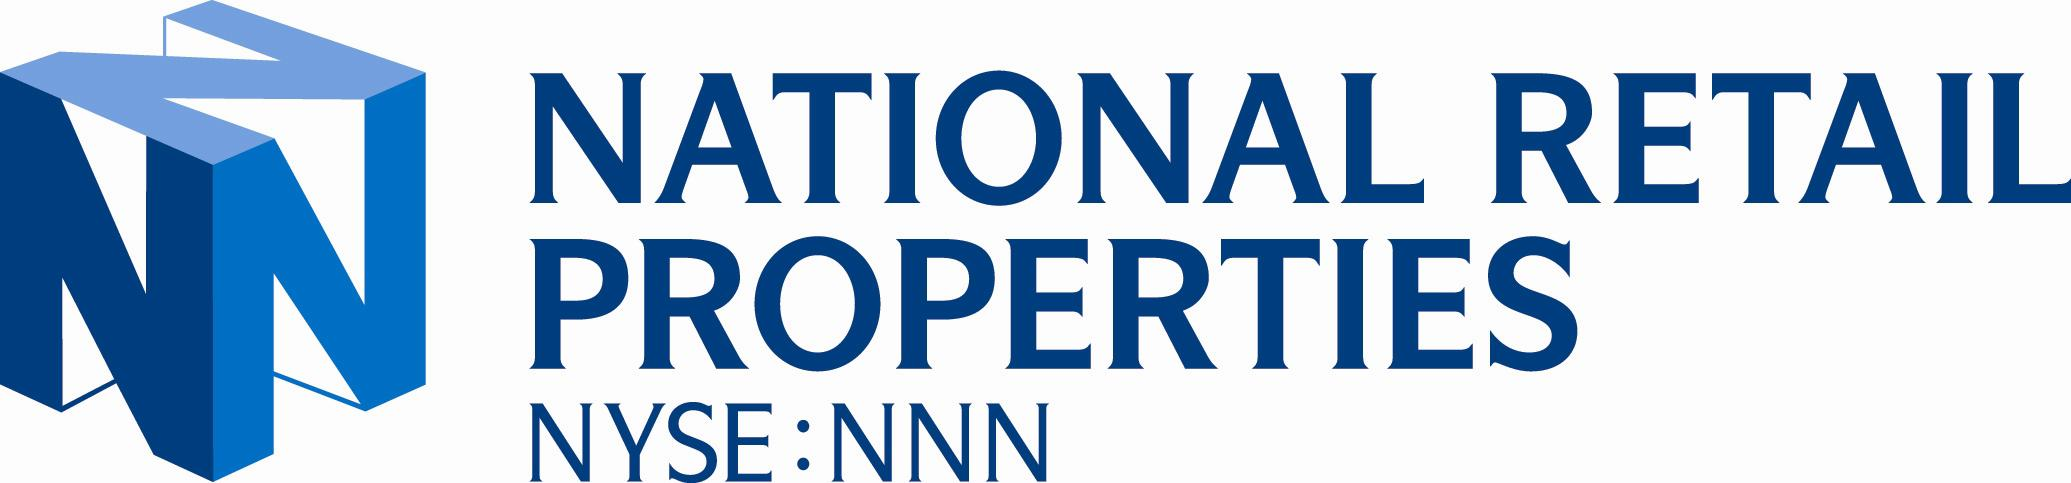 National Retail Properties, Inc. Company Logo